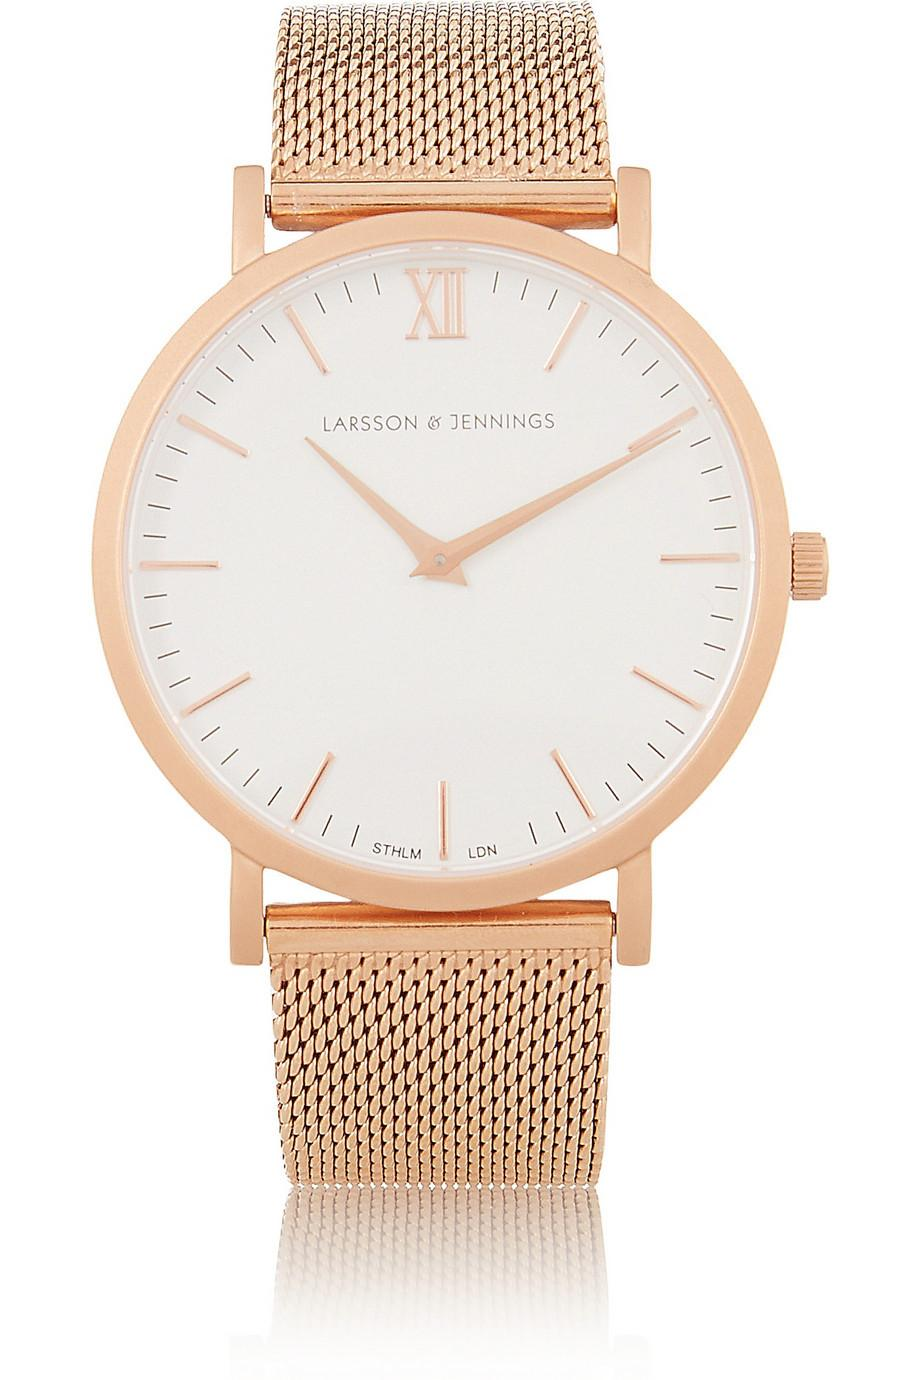 Things are looking rosy thanks to @LarssonJennings rose gold watch, exclusive to #netaporter. http://t.co/enW5hQDC7p http://t.co/JdEjkSEYNy